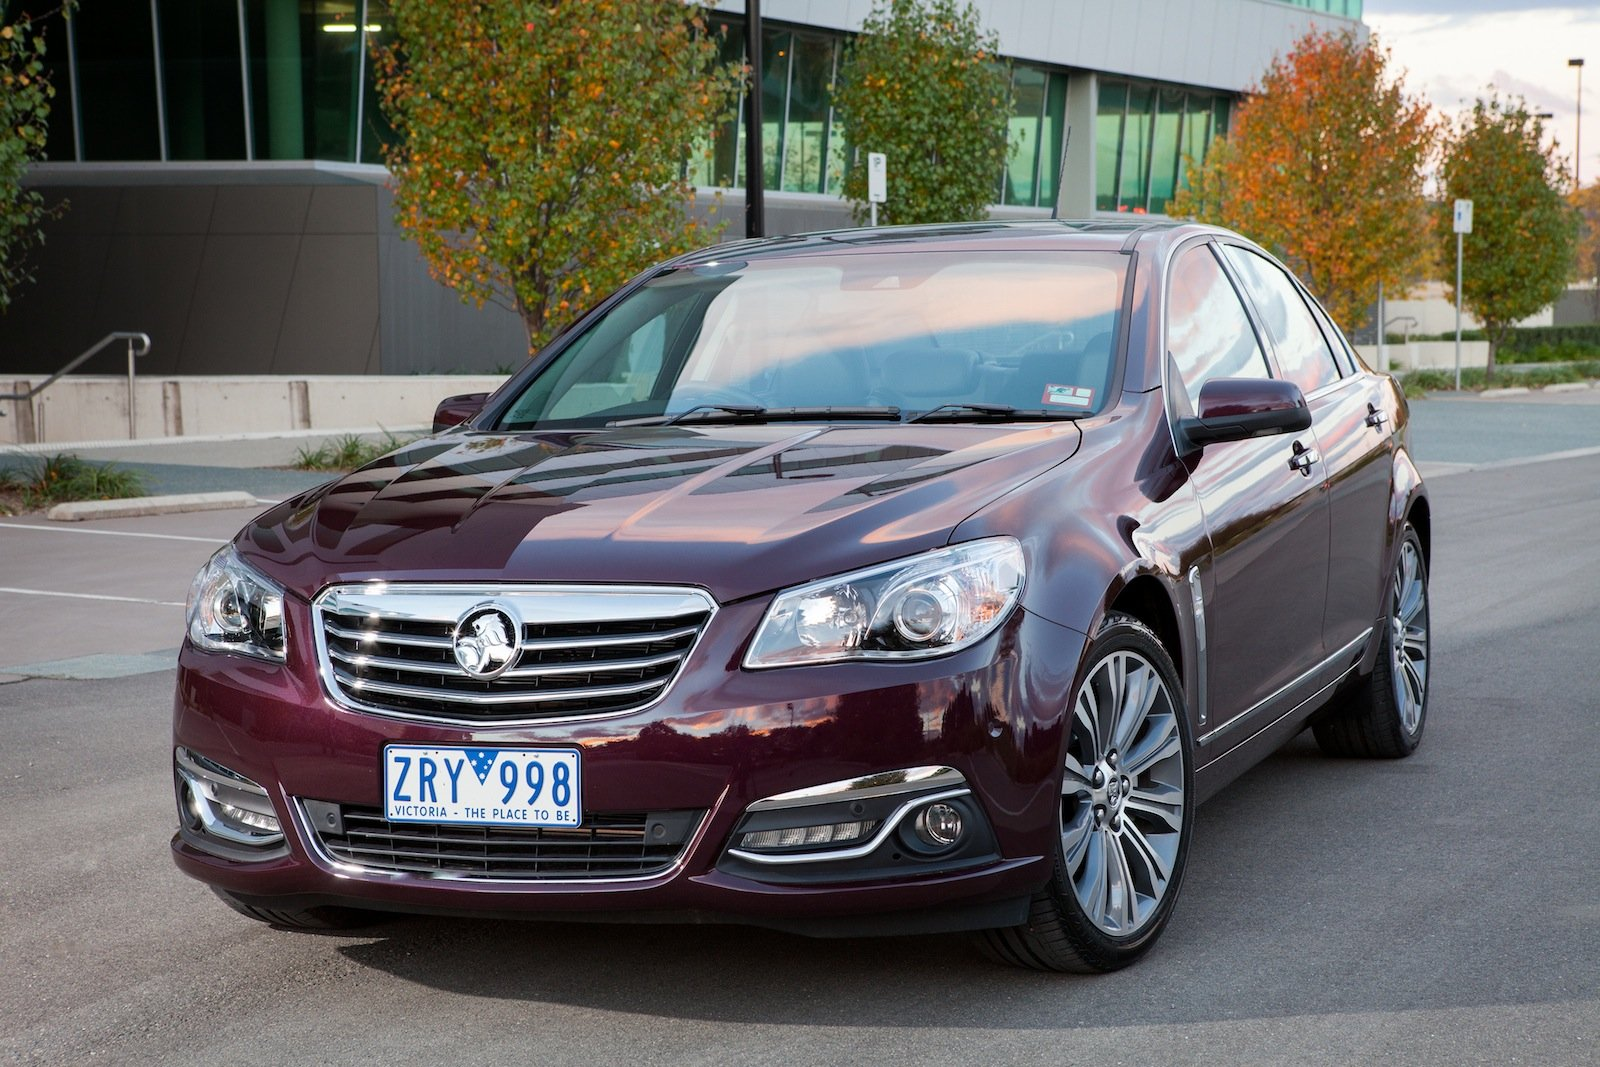 2013 Holden Vf Calais Review Caradvice